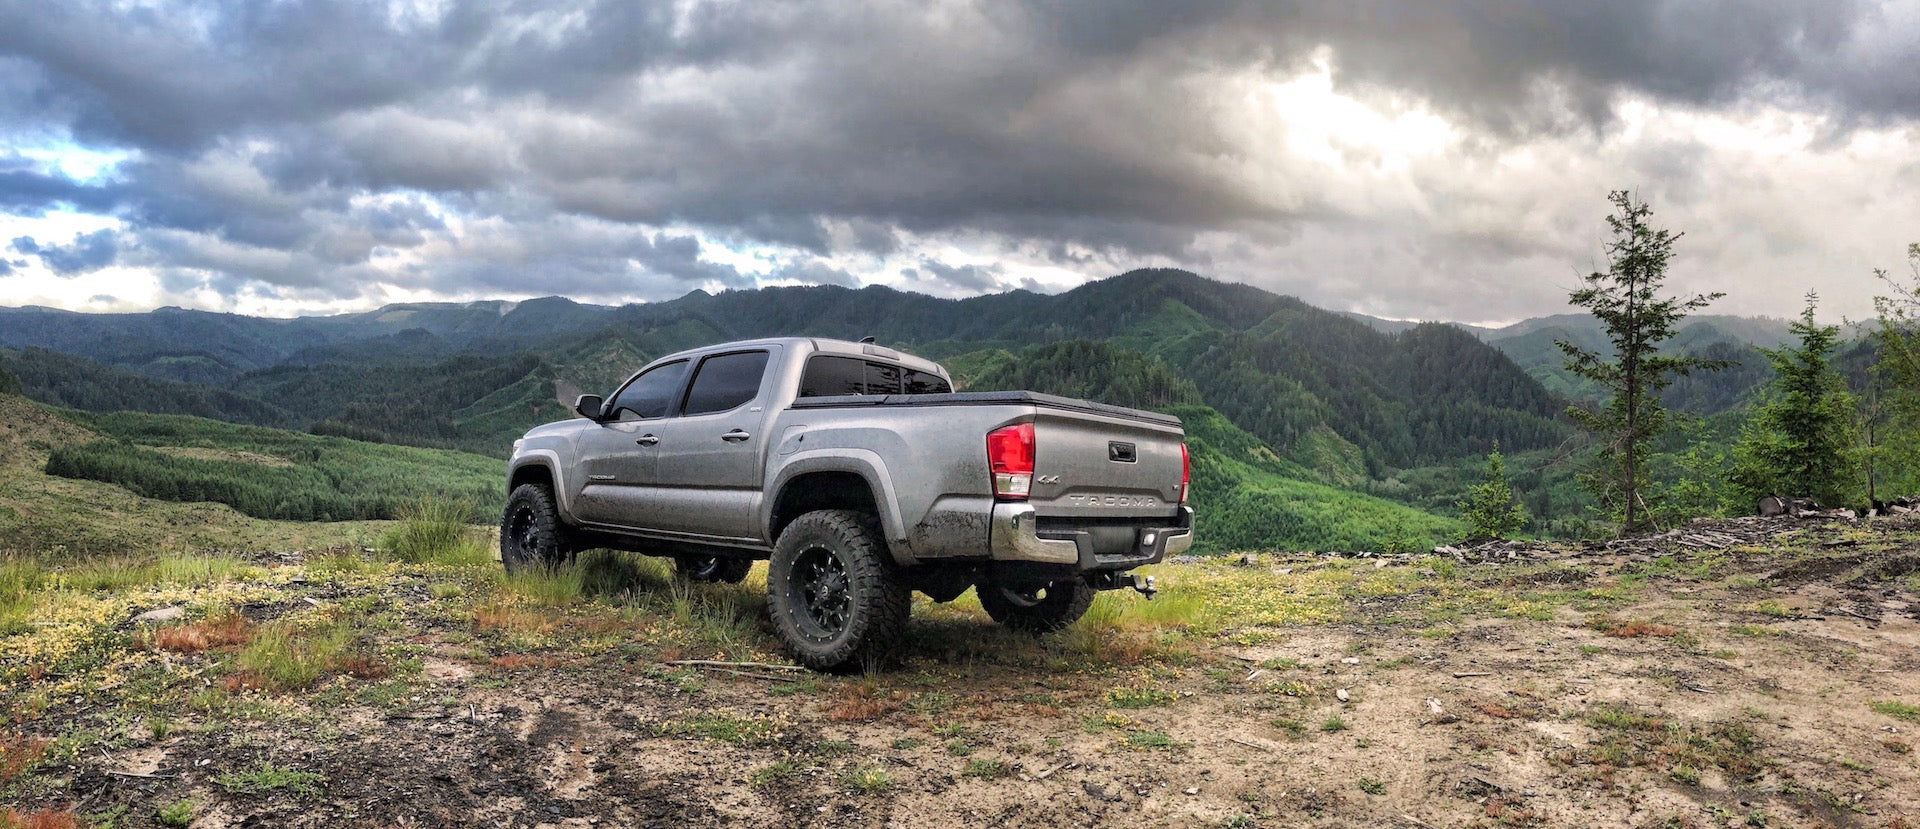 Tacoma Back Pages >> Toyota Tacoma Bed Cover Heavy Duty Hard Tonneau Covers